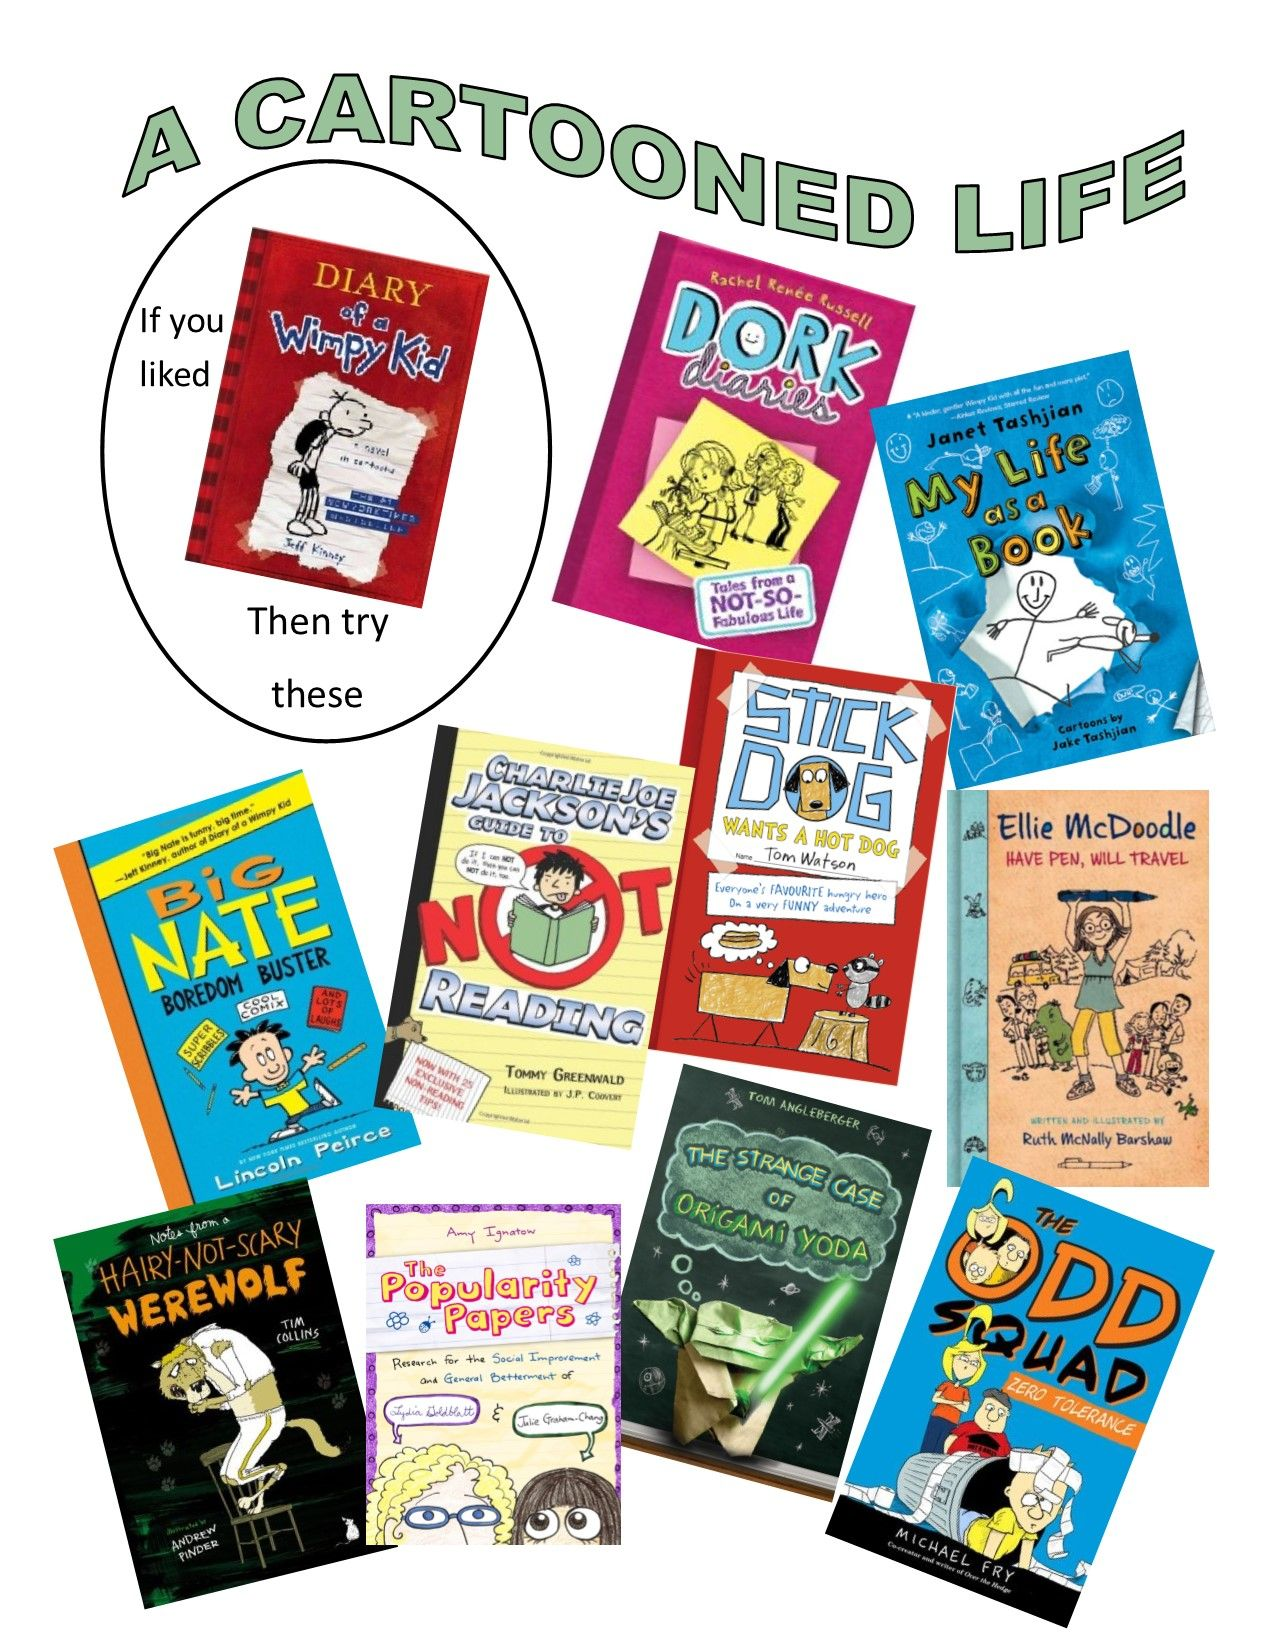 If You Liked Diary Of A Wimpy Kid By Jeff Kinney Then You Might